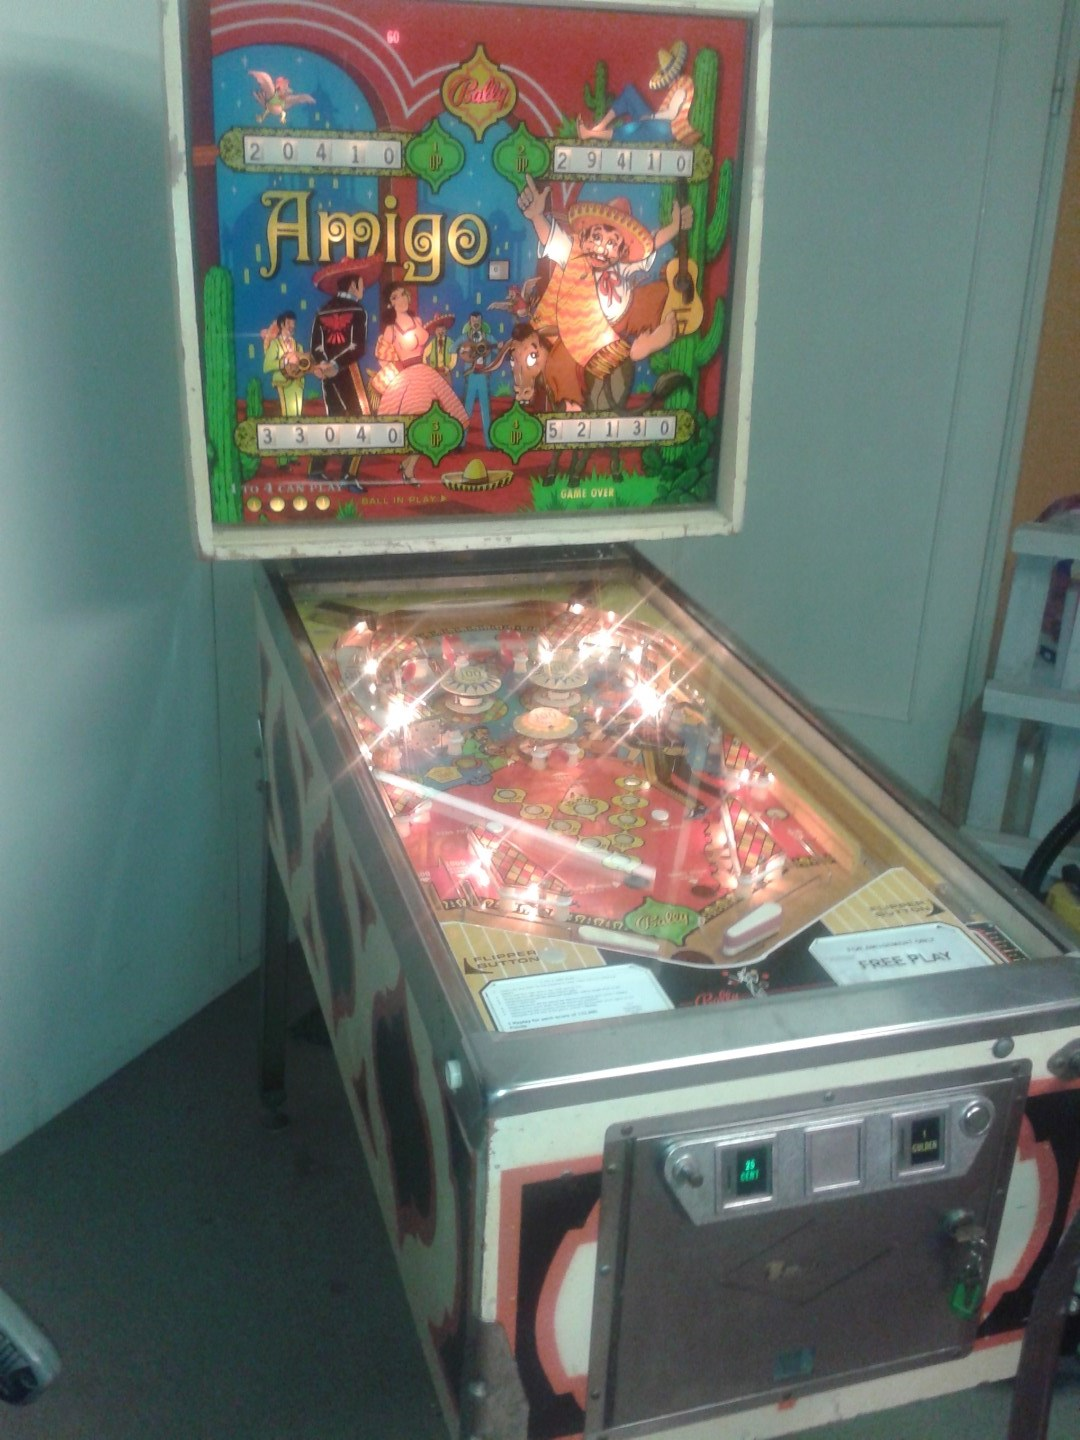 pick up retail prices size 40 bergemmeloord for visit pinball museum krakow